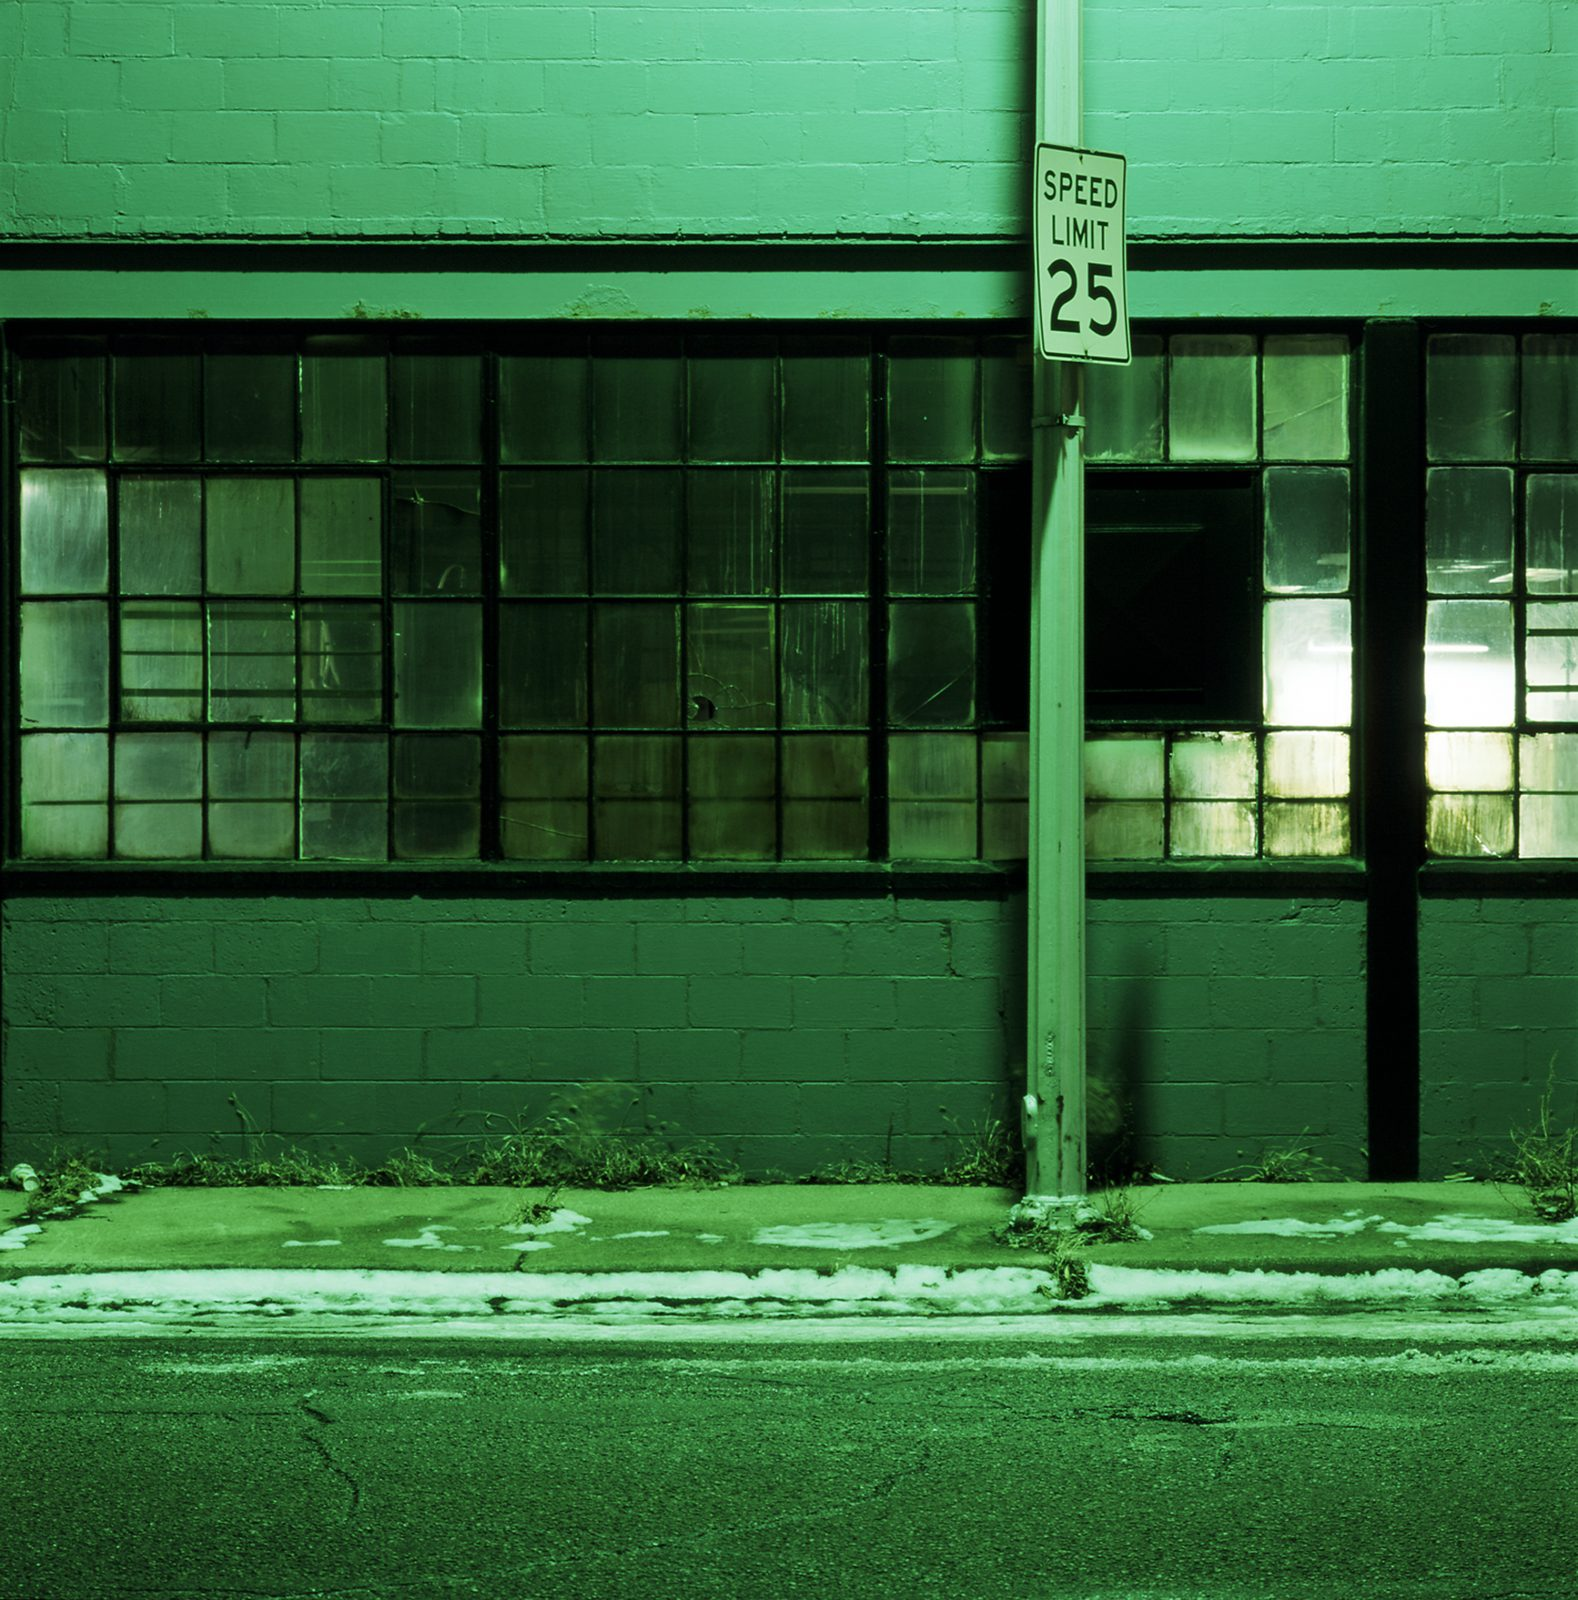 Industrial building at night. Detroit, Michigan.